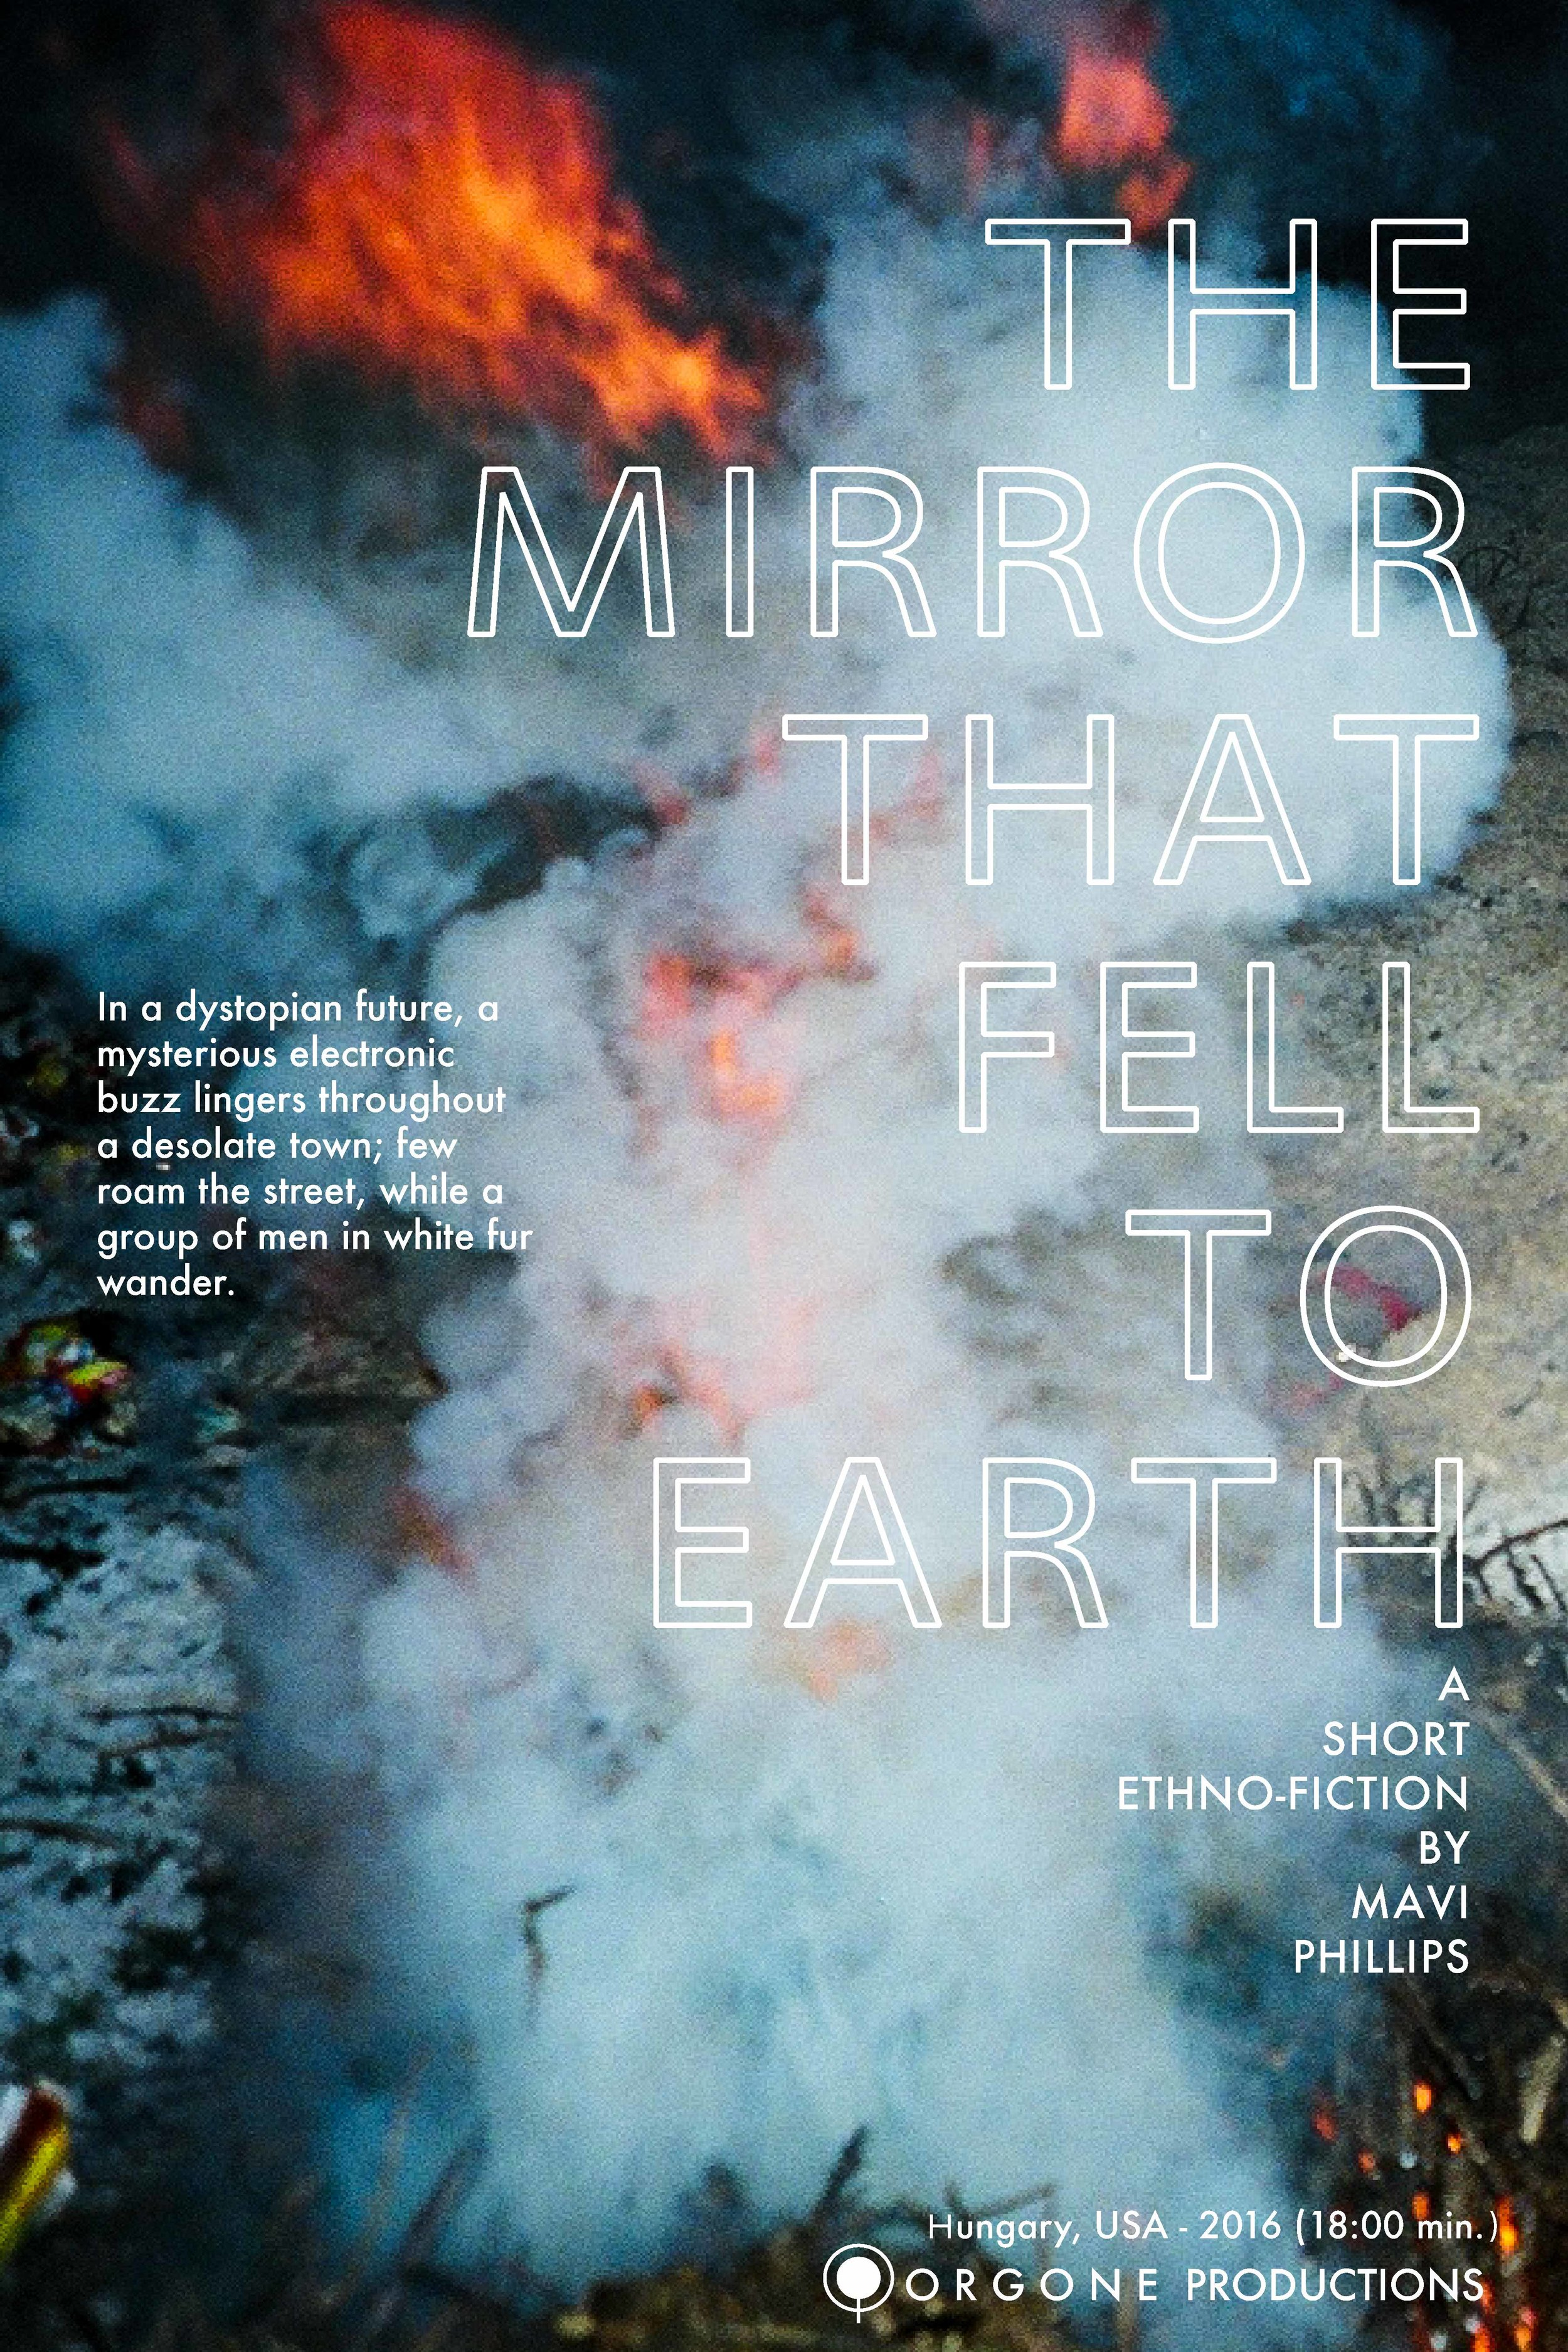 themirror-poster16.10.11-lowres-03-01-01.jpg